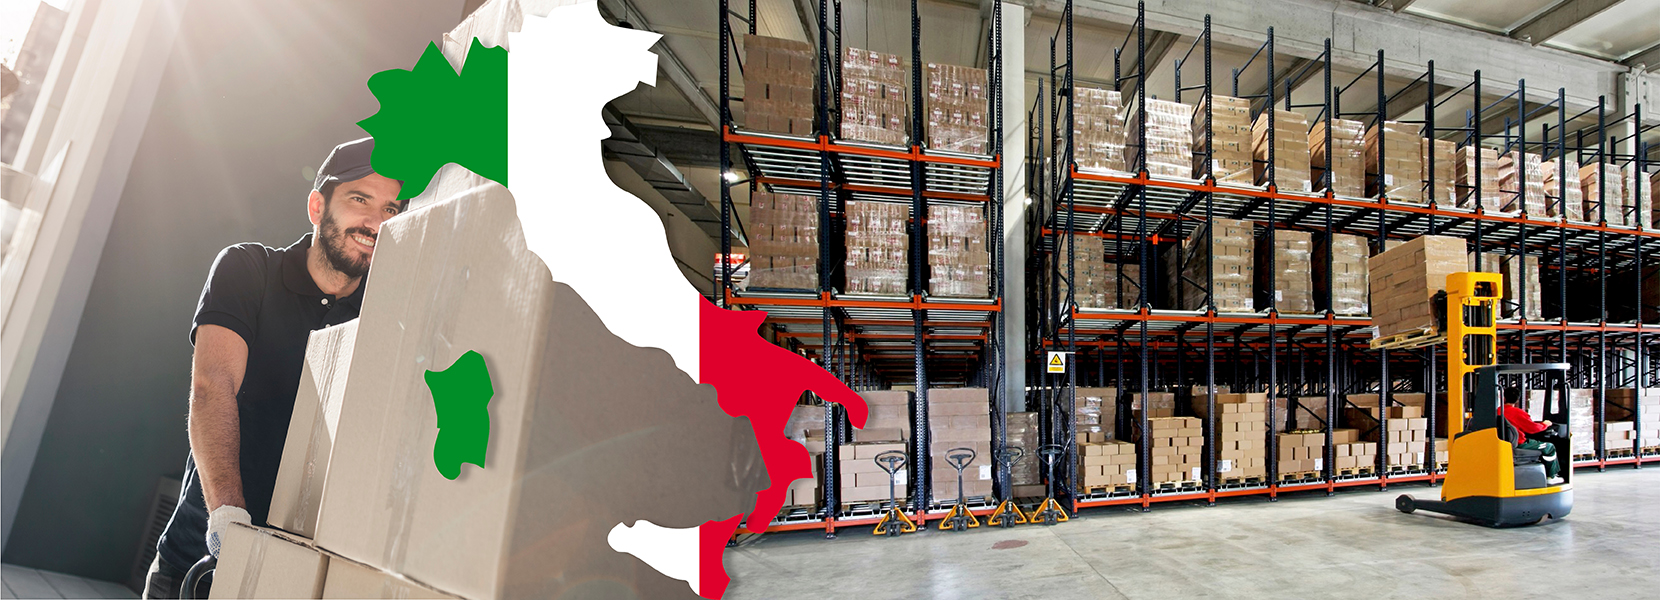 Ciao Italia! Salesupply opens a new fulfillment location in Verona, Italy